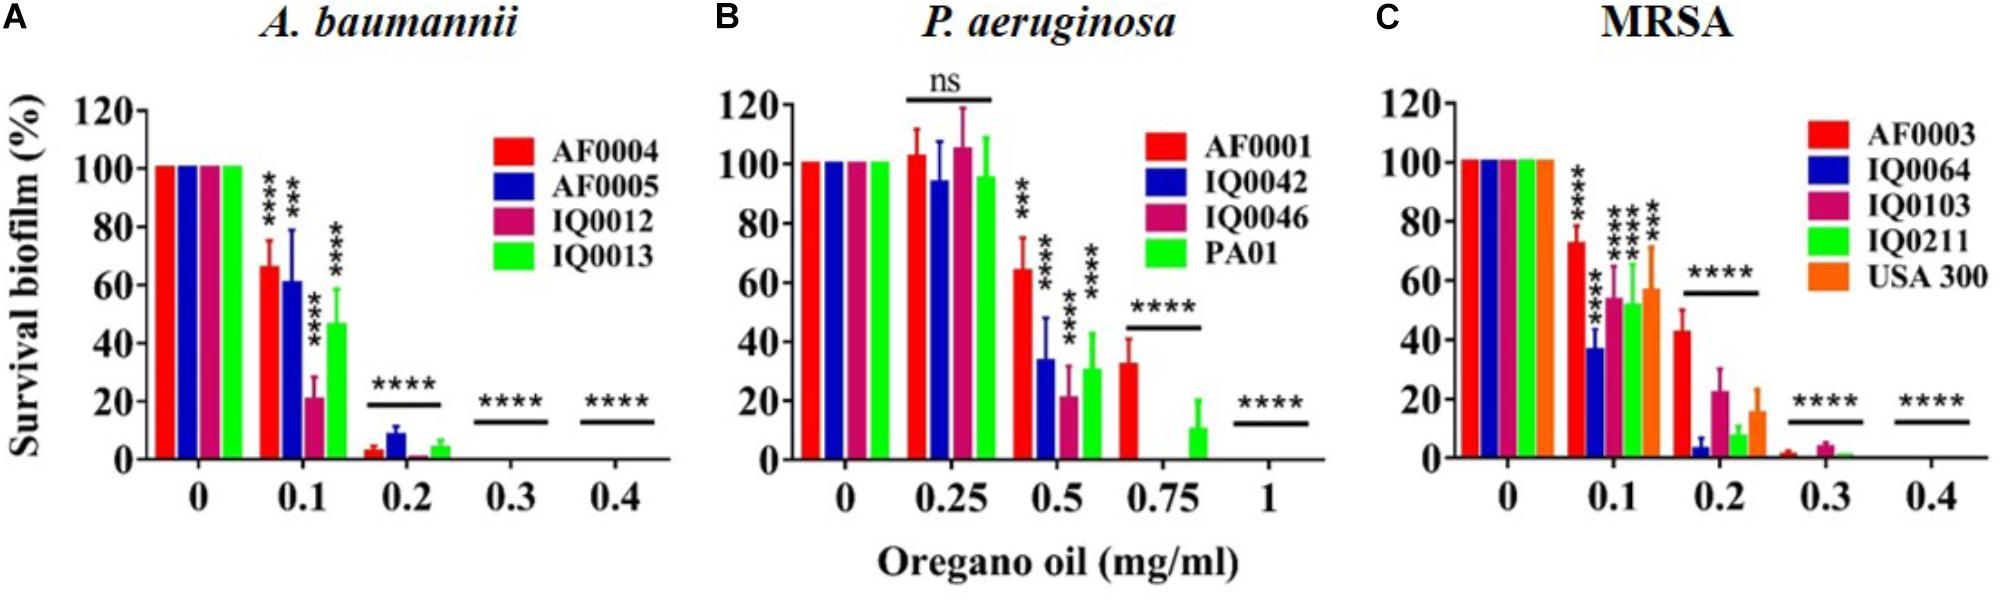 Frontiers | Bactericidal Property of Oregano Oil Against Multidrug